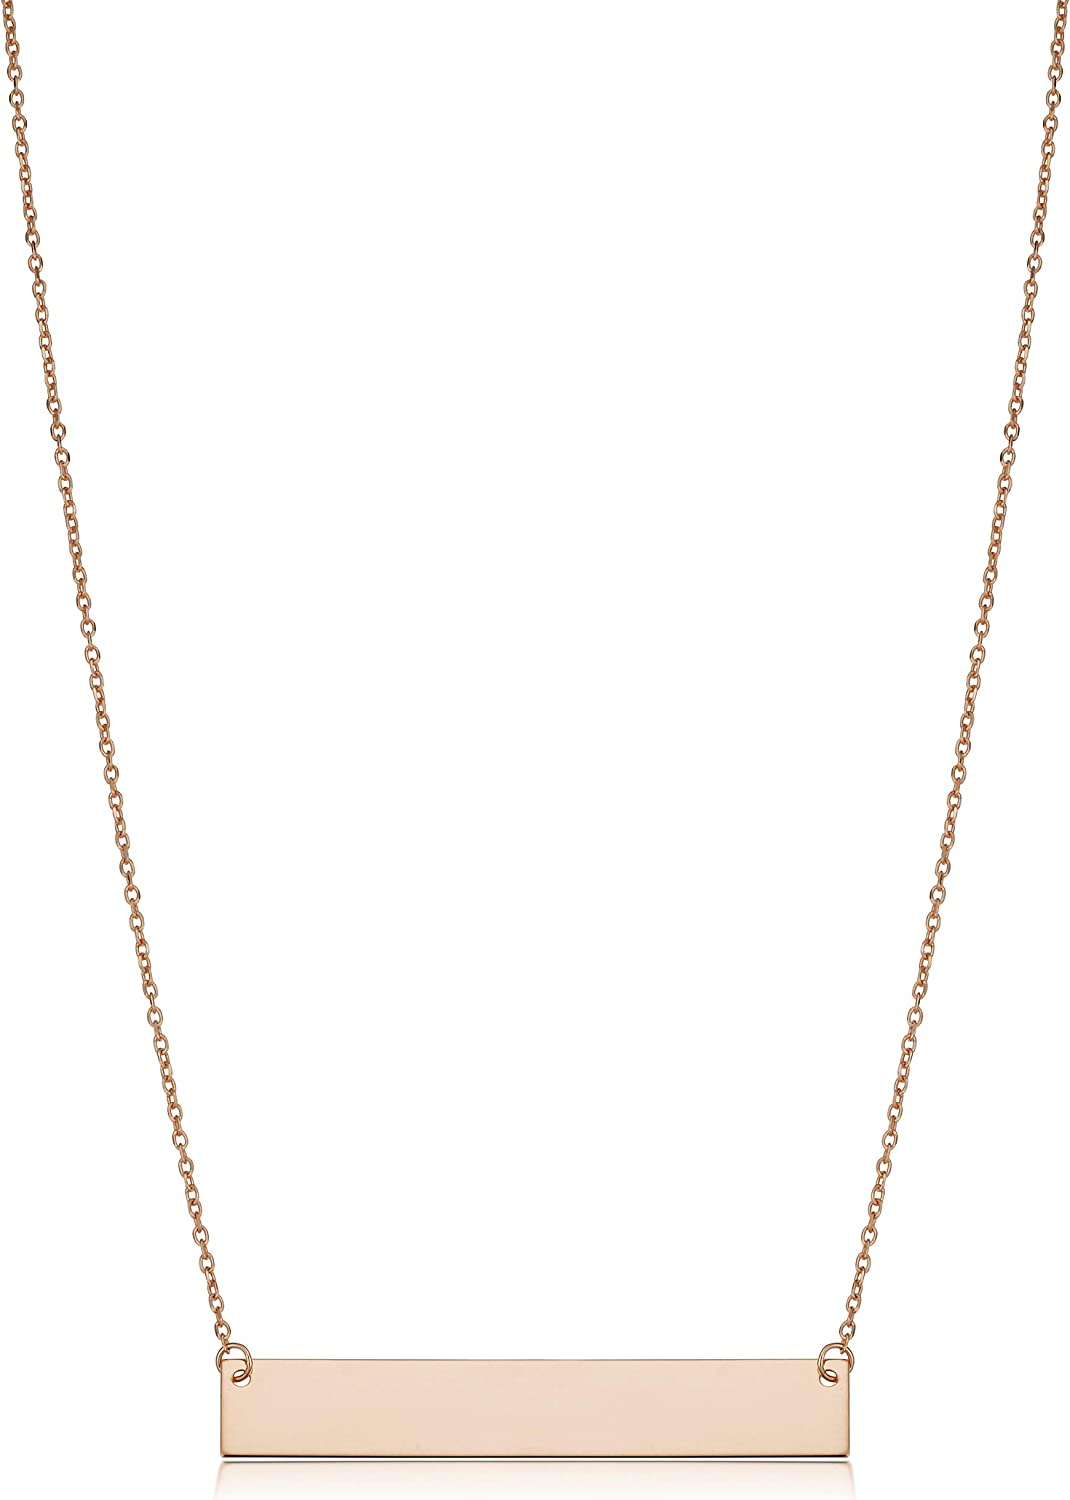 Kooljewelry 10k Yellow, White or Rose Gold 1.5 inch Polished Bar Necklace (18 inch)